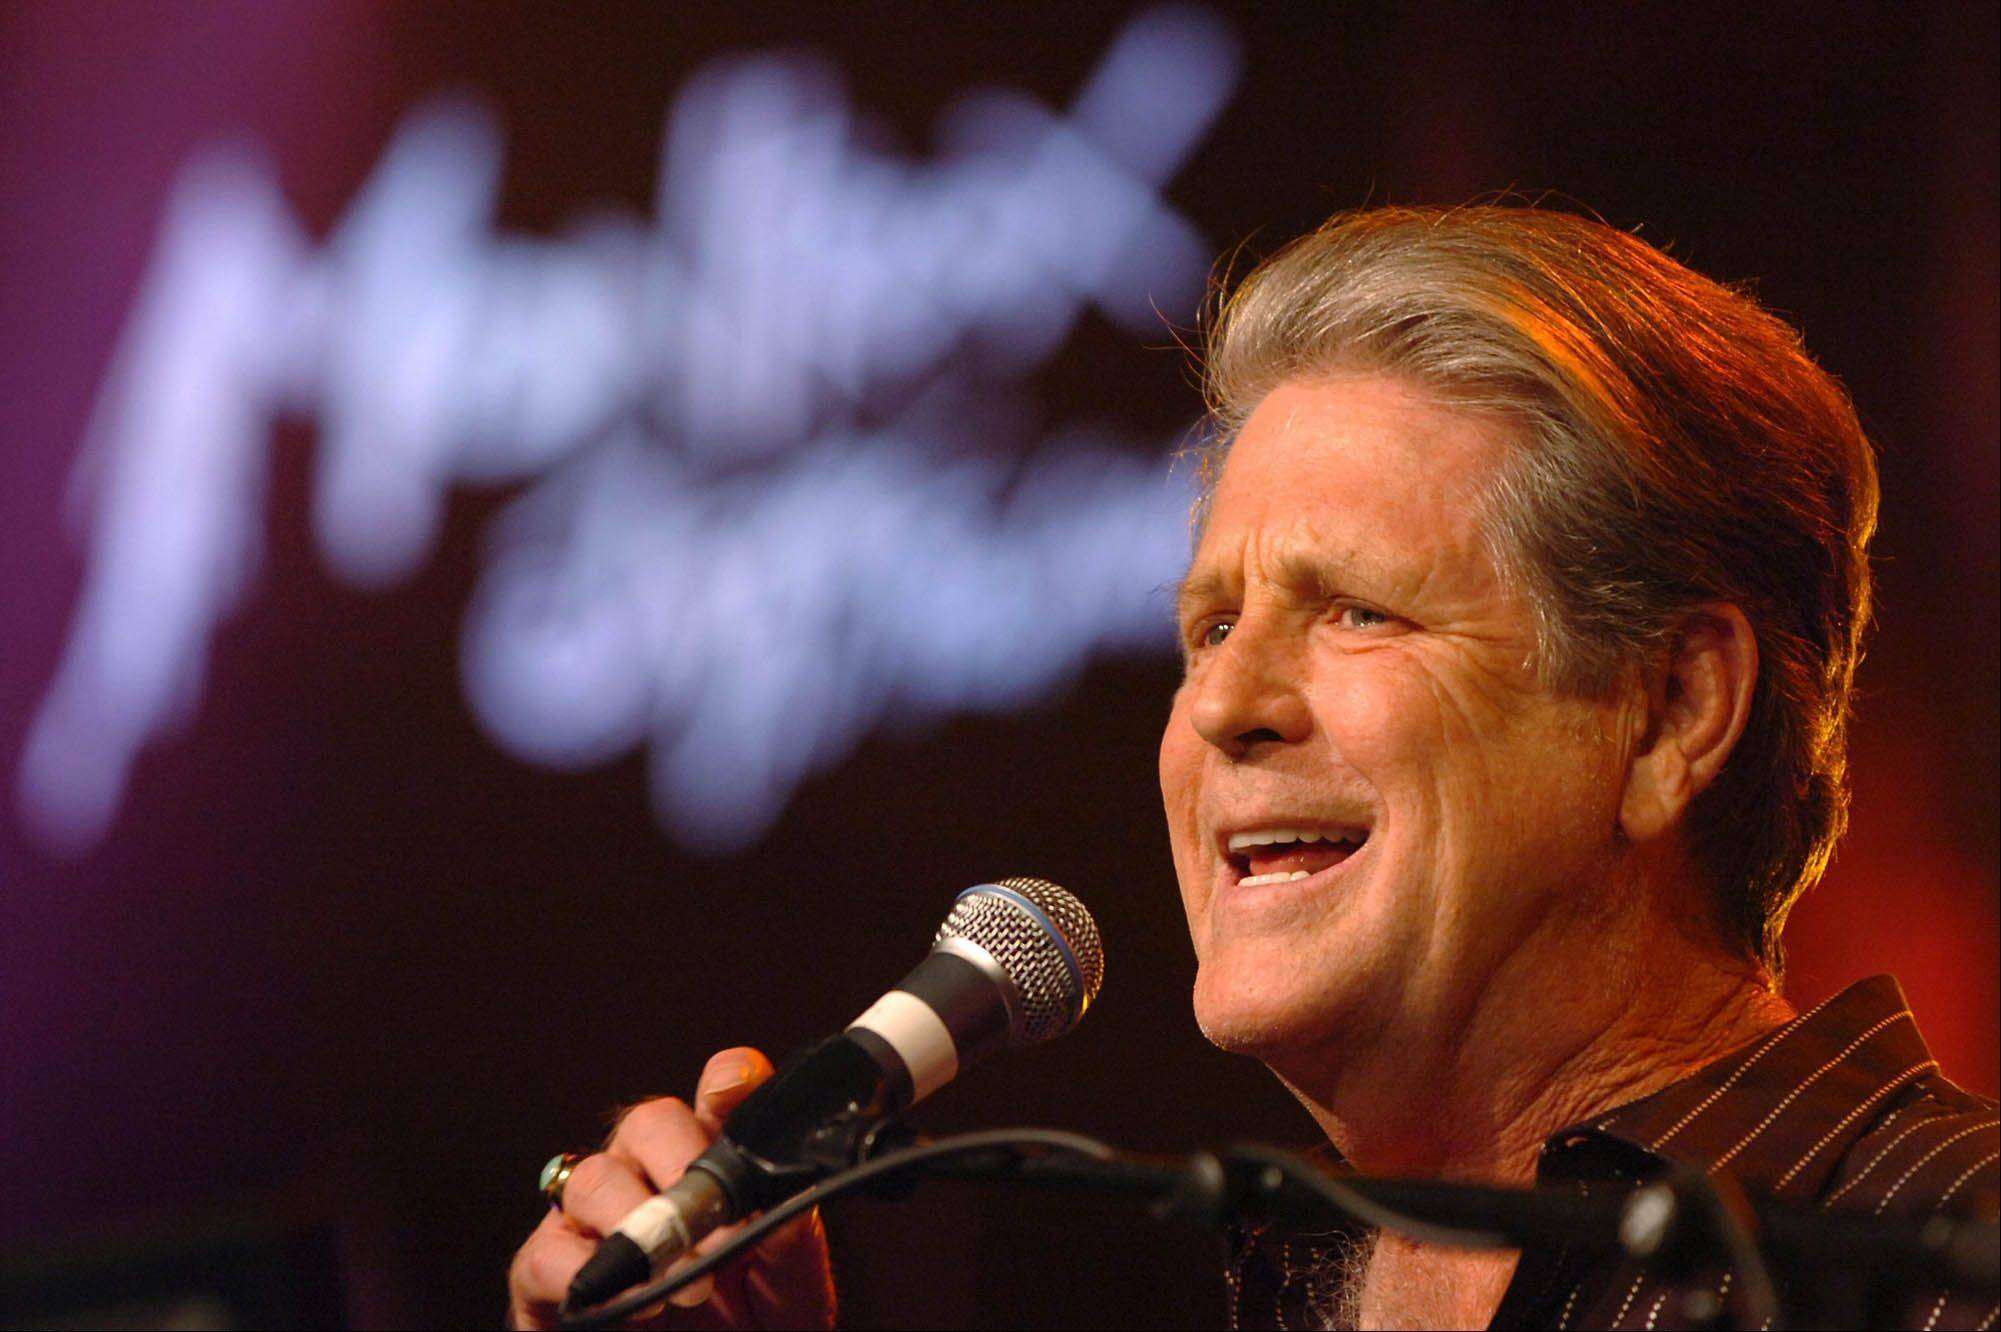 Brian Wilson performs on the Stravinski Hall stage in 2005 during the 39th Montreux Jazz Festival in Montreux, Switzerland.